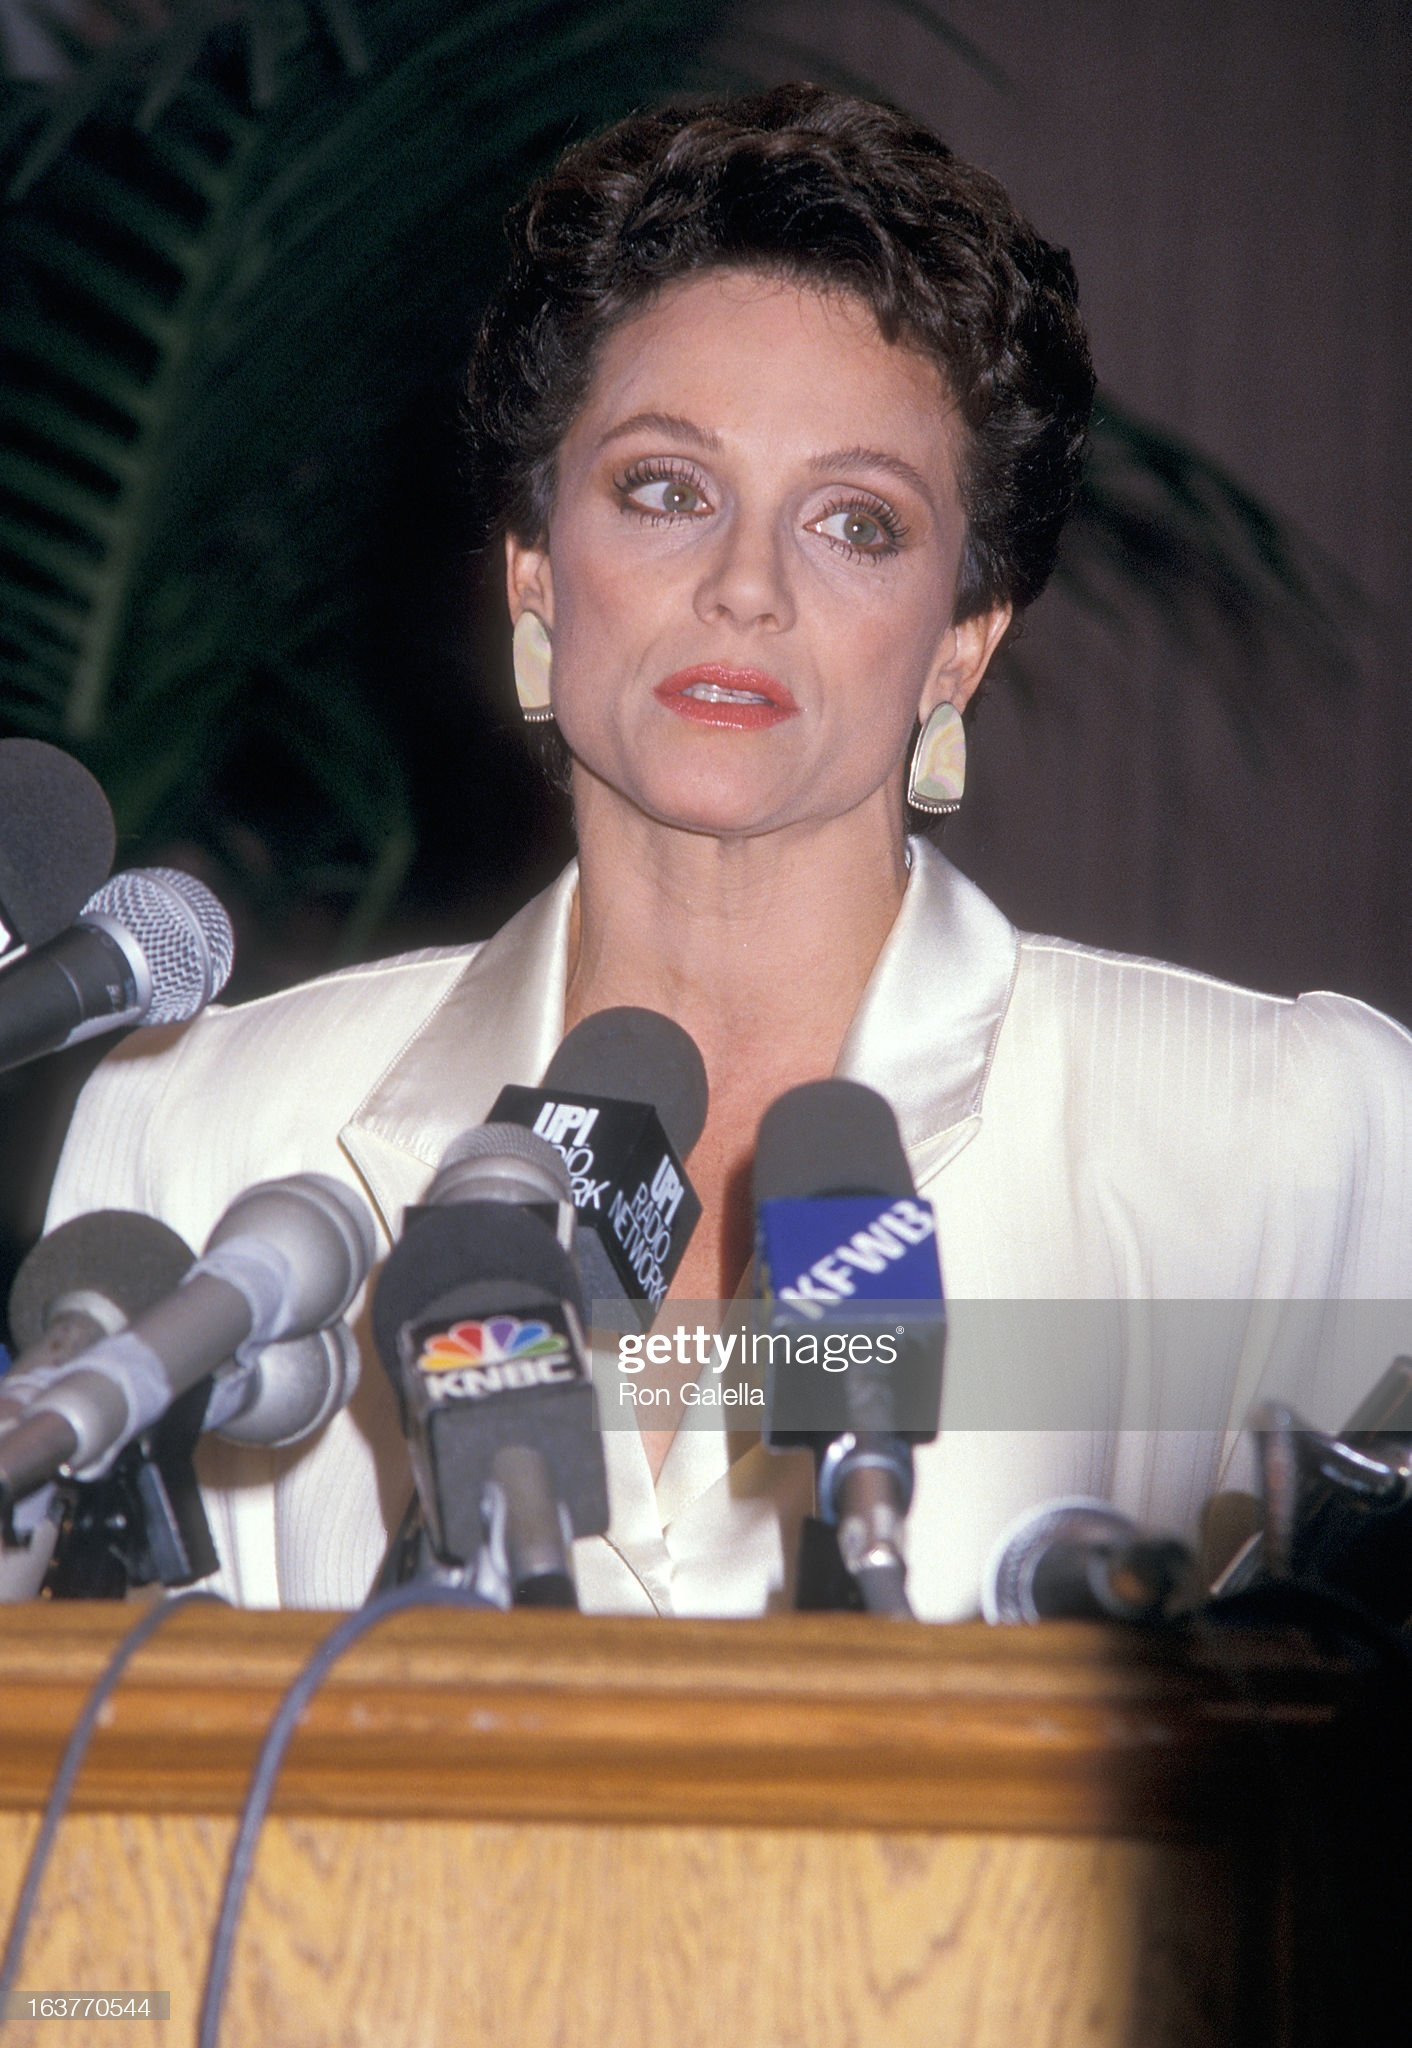 actress-valerie-harper-addresses-the-press-to-speak-about-being-fired-picture-id163770544